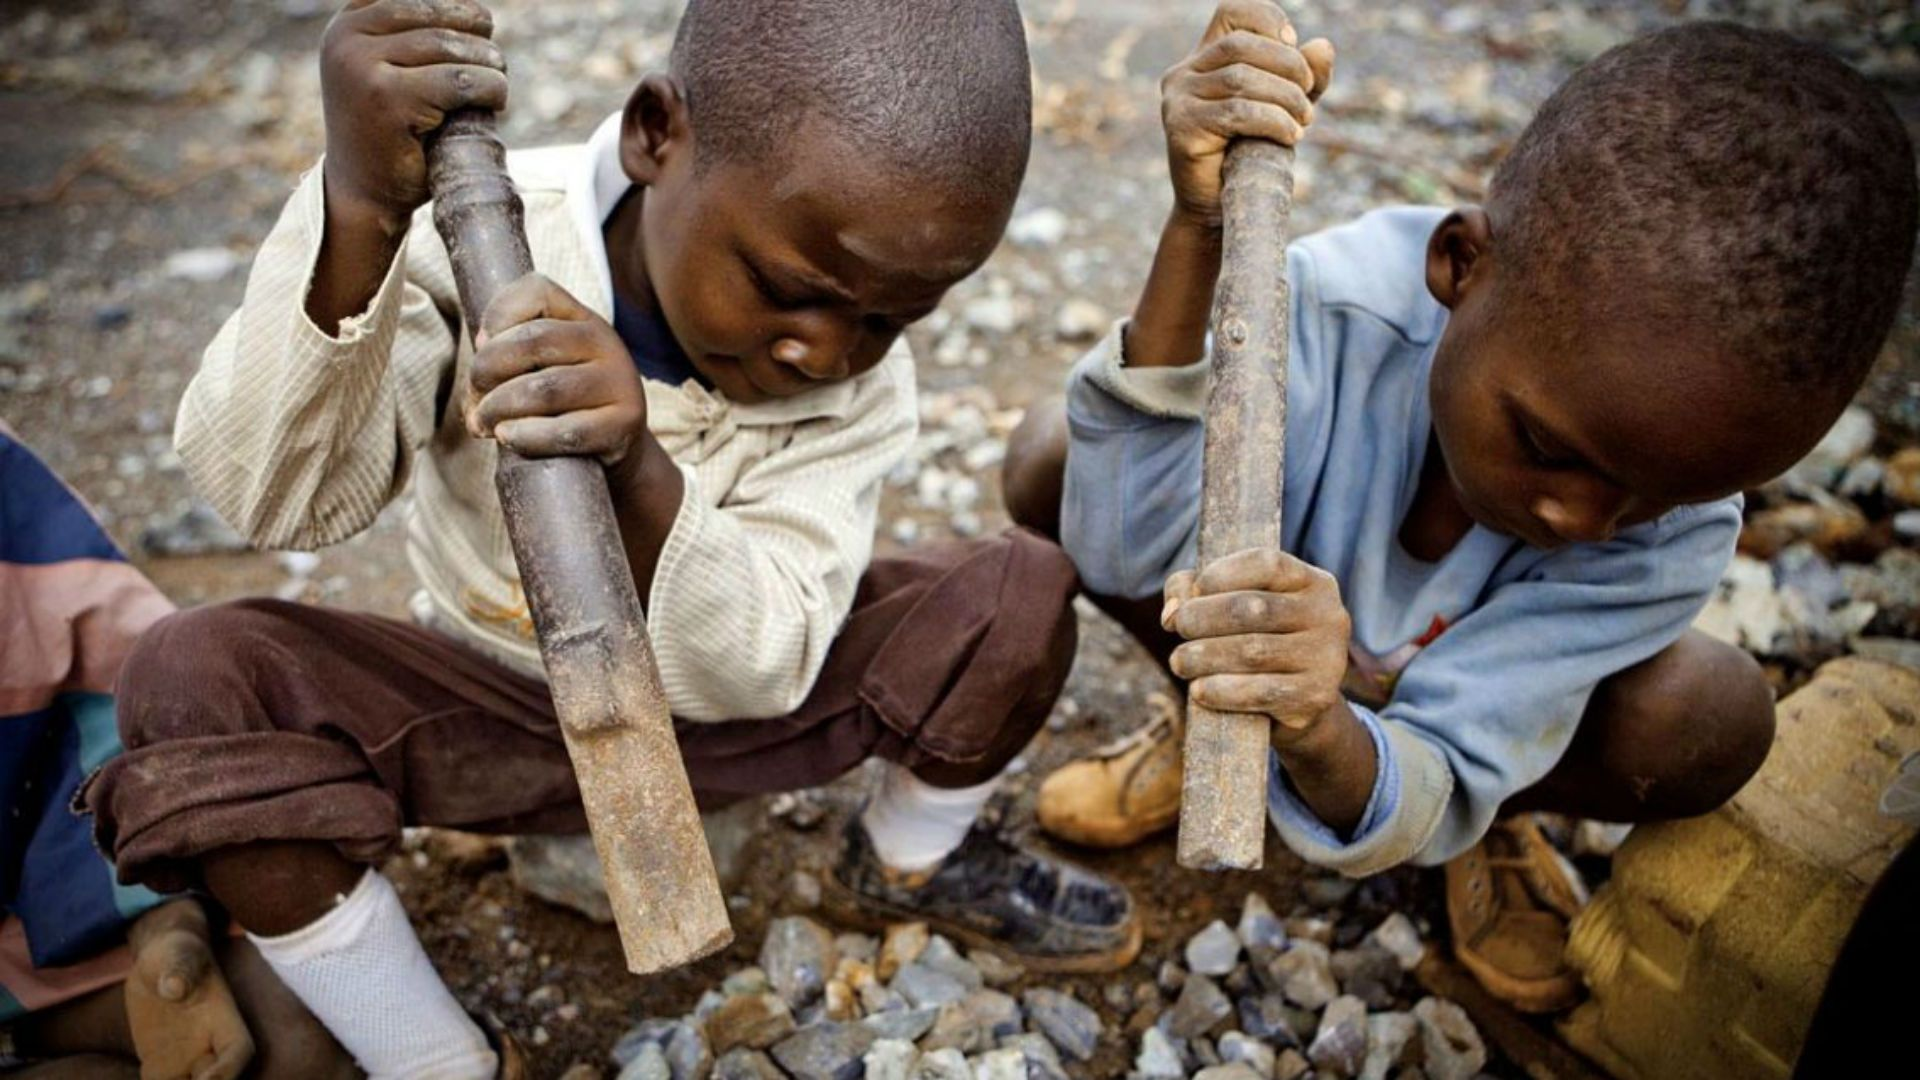 Child labor in the Democratic Republic of Congo supplies cobalt, an essential component of smartphone production, to major multinational technology companies. (AP/Getty Images)